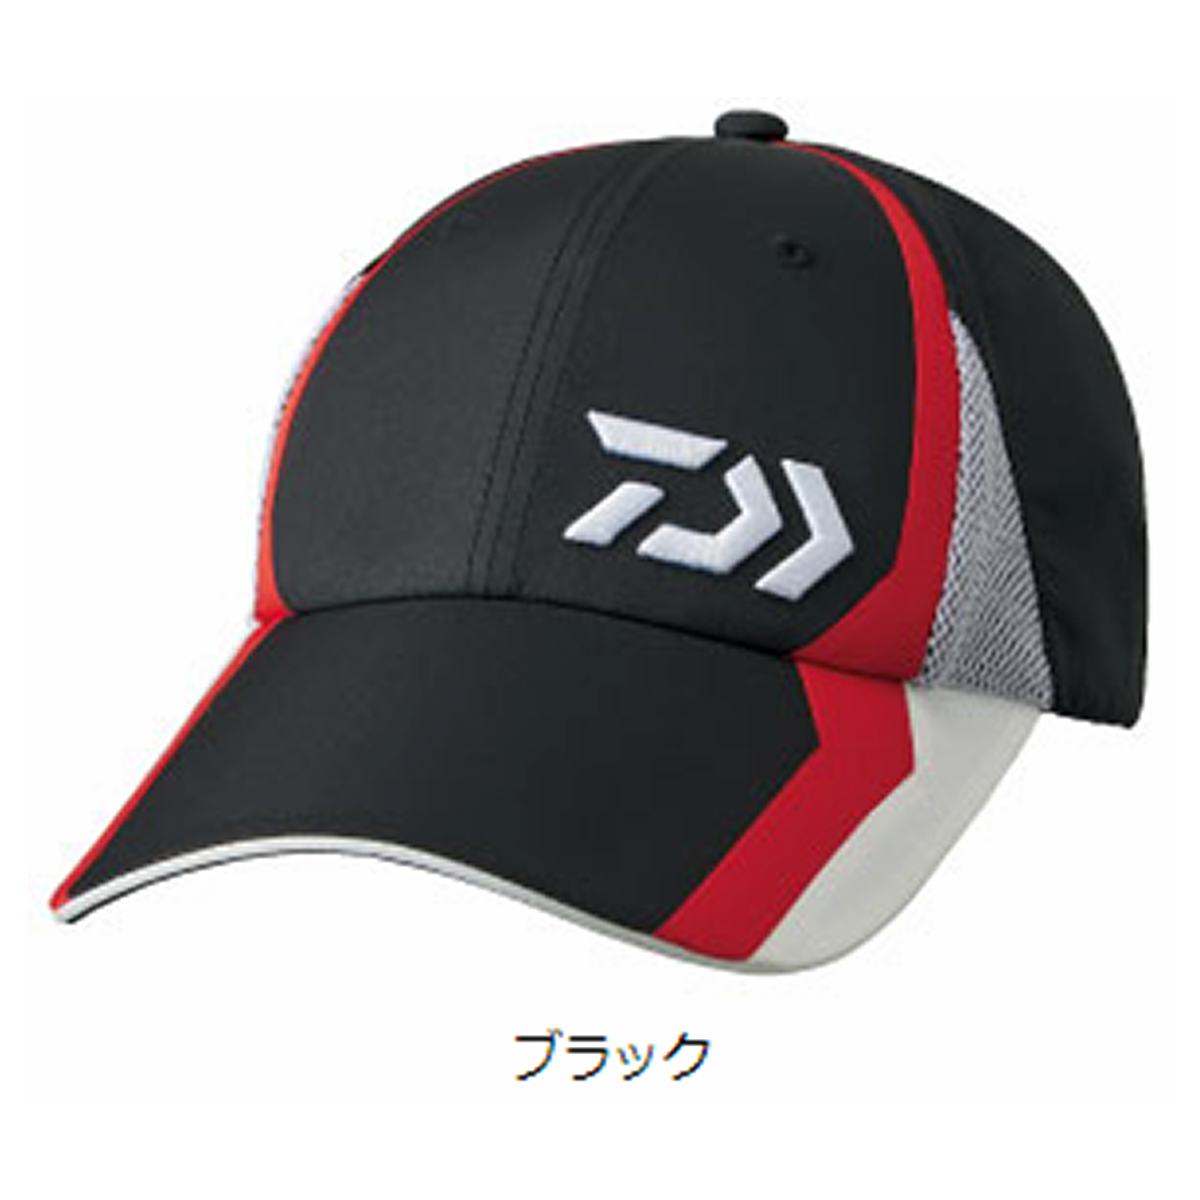 91dcb3110b41 Fishing Tackle Point: Daiwa water repellency cap DC-61008-free black ...